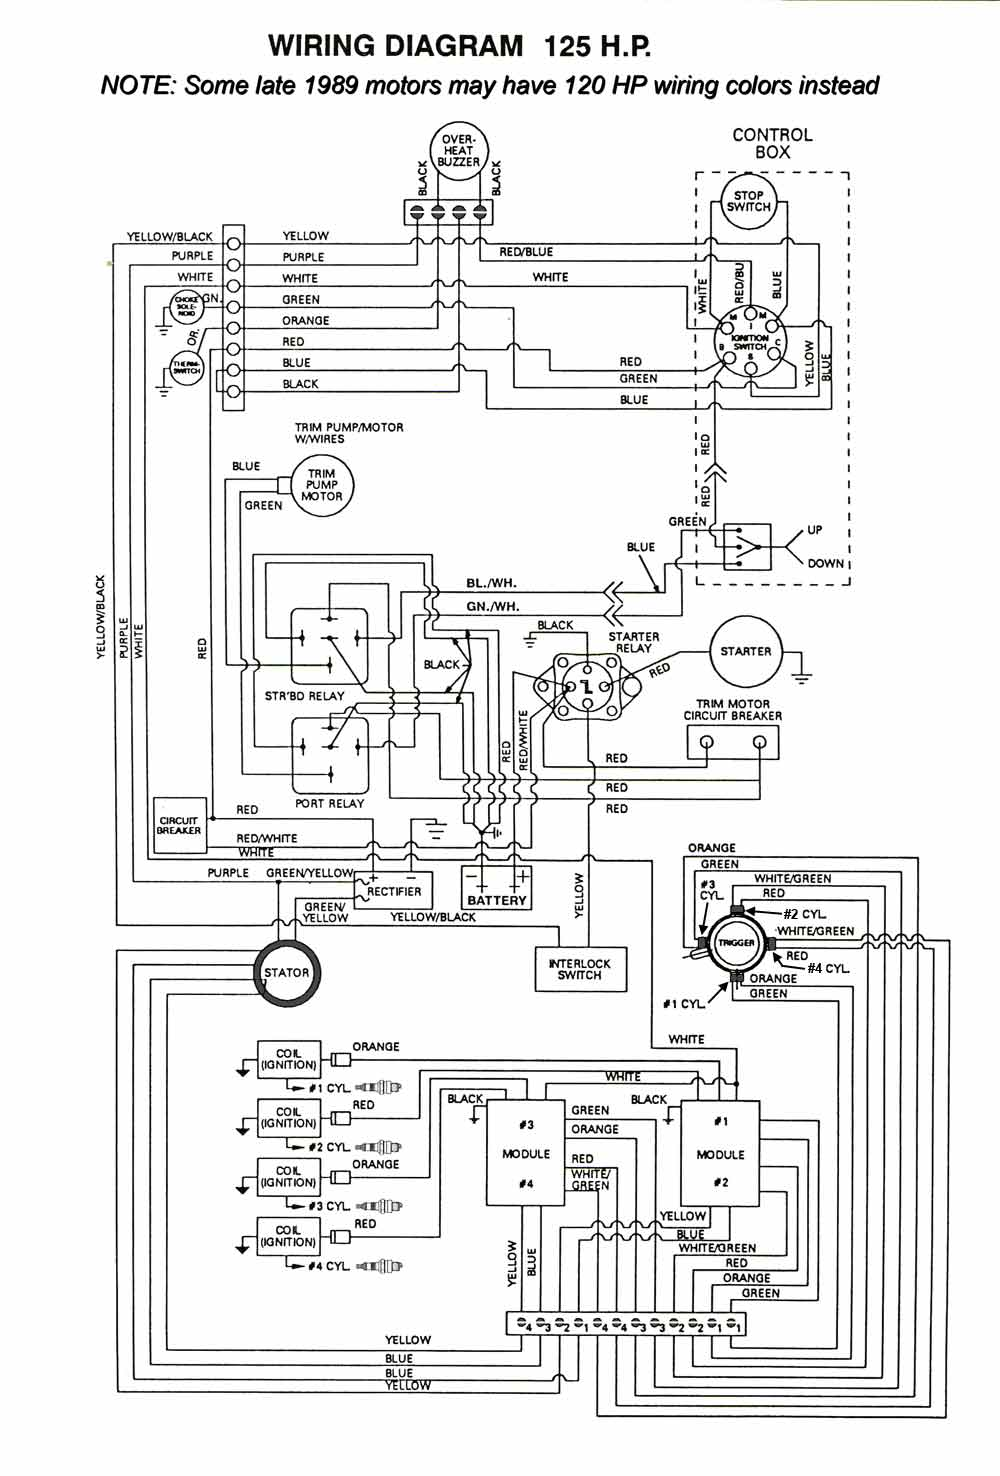 Pleasant Johnson 50 Hp Wiring Diagram Free Picture Wiring Diagram Wiring Cloud Staixaidewilluminateatxorg